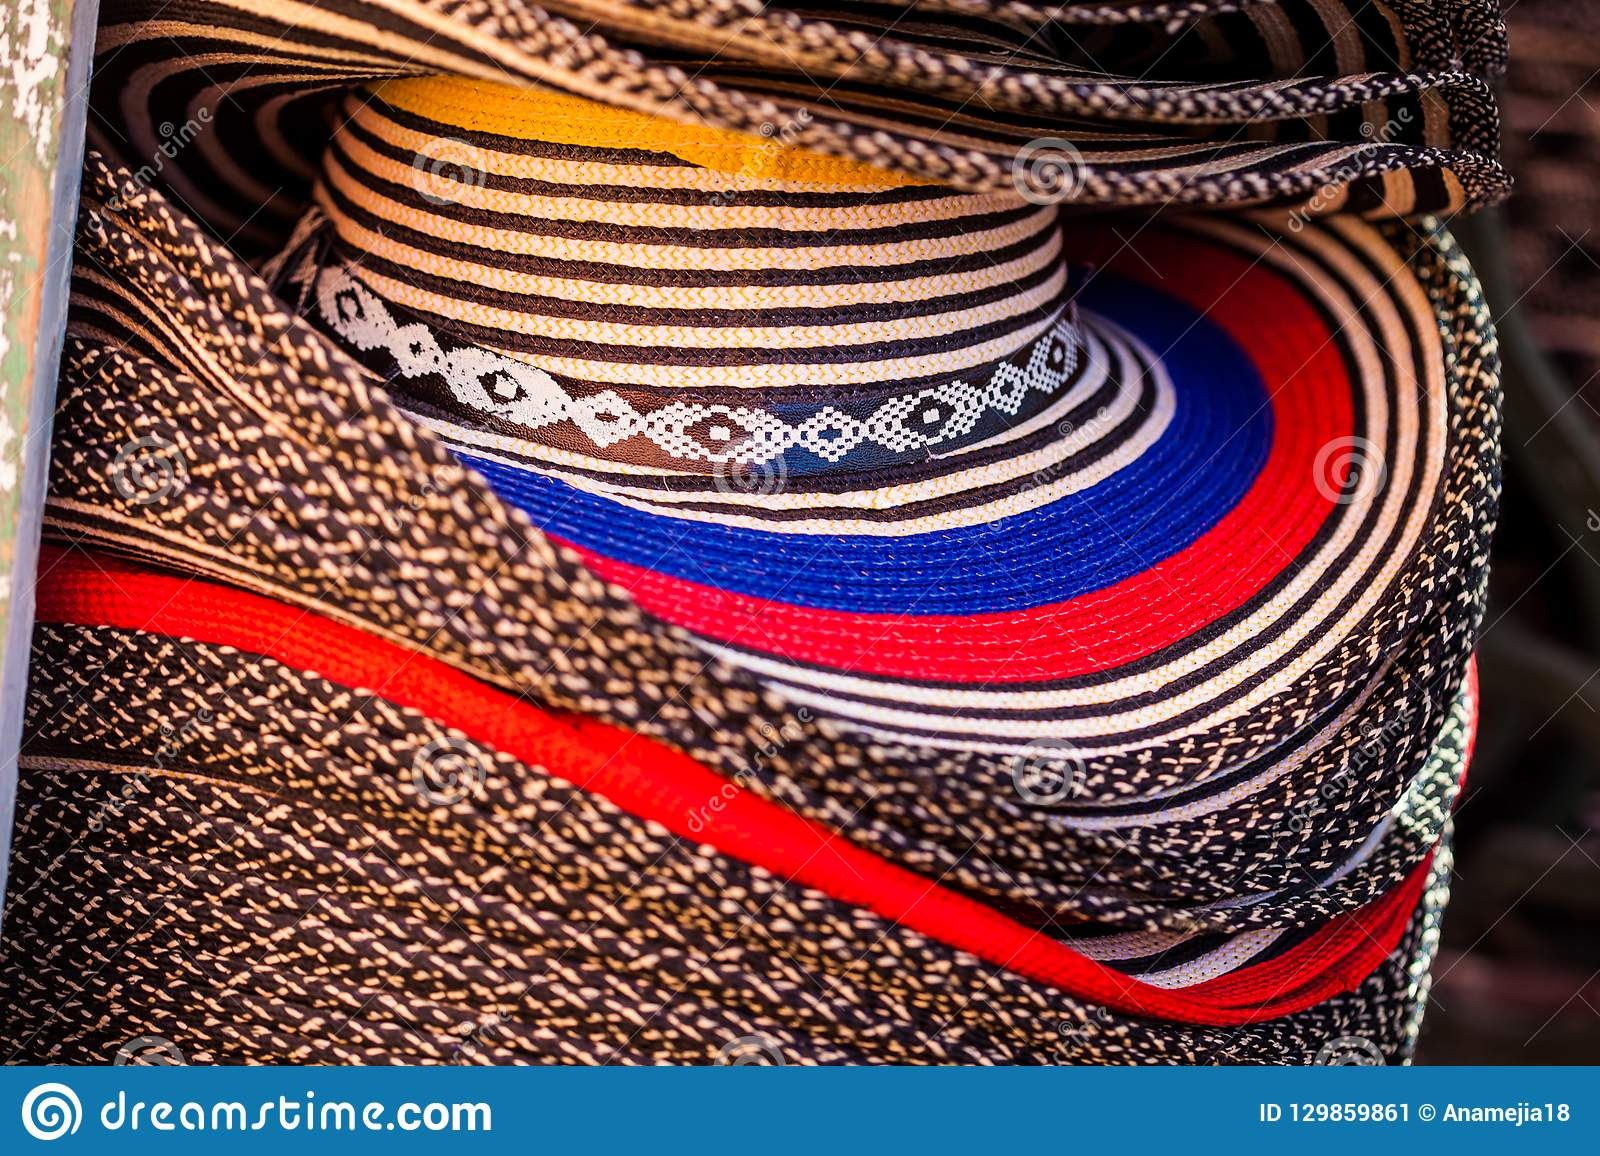 d1495a2f9fd An street sell of traditional hats from Colombia called Sombrero vueltiao